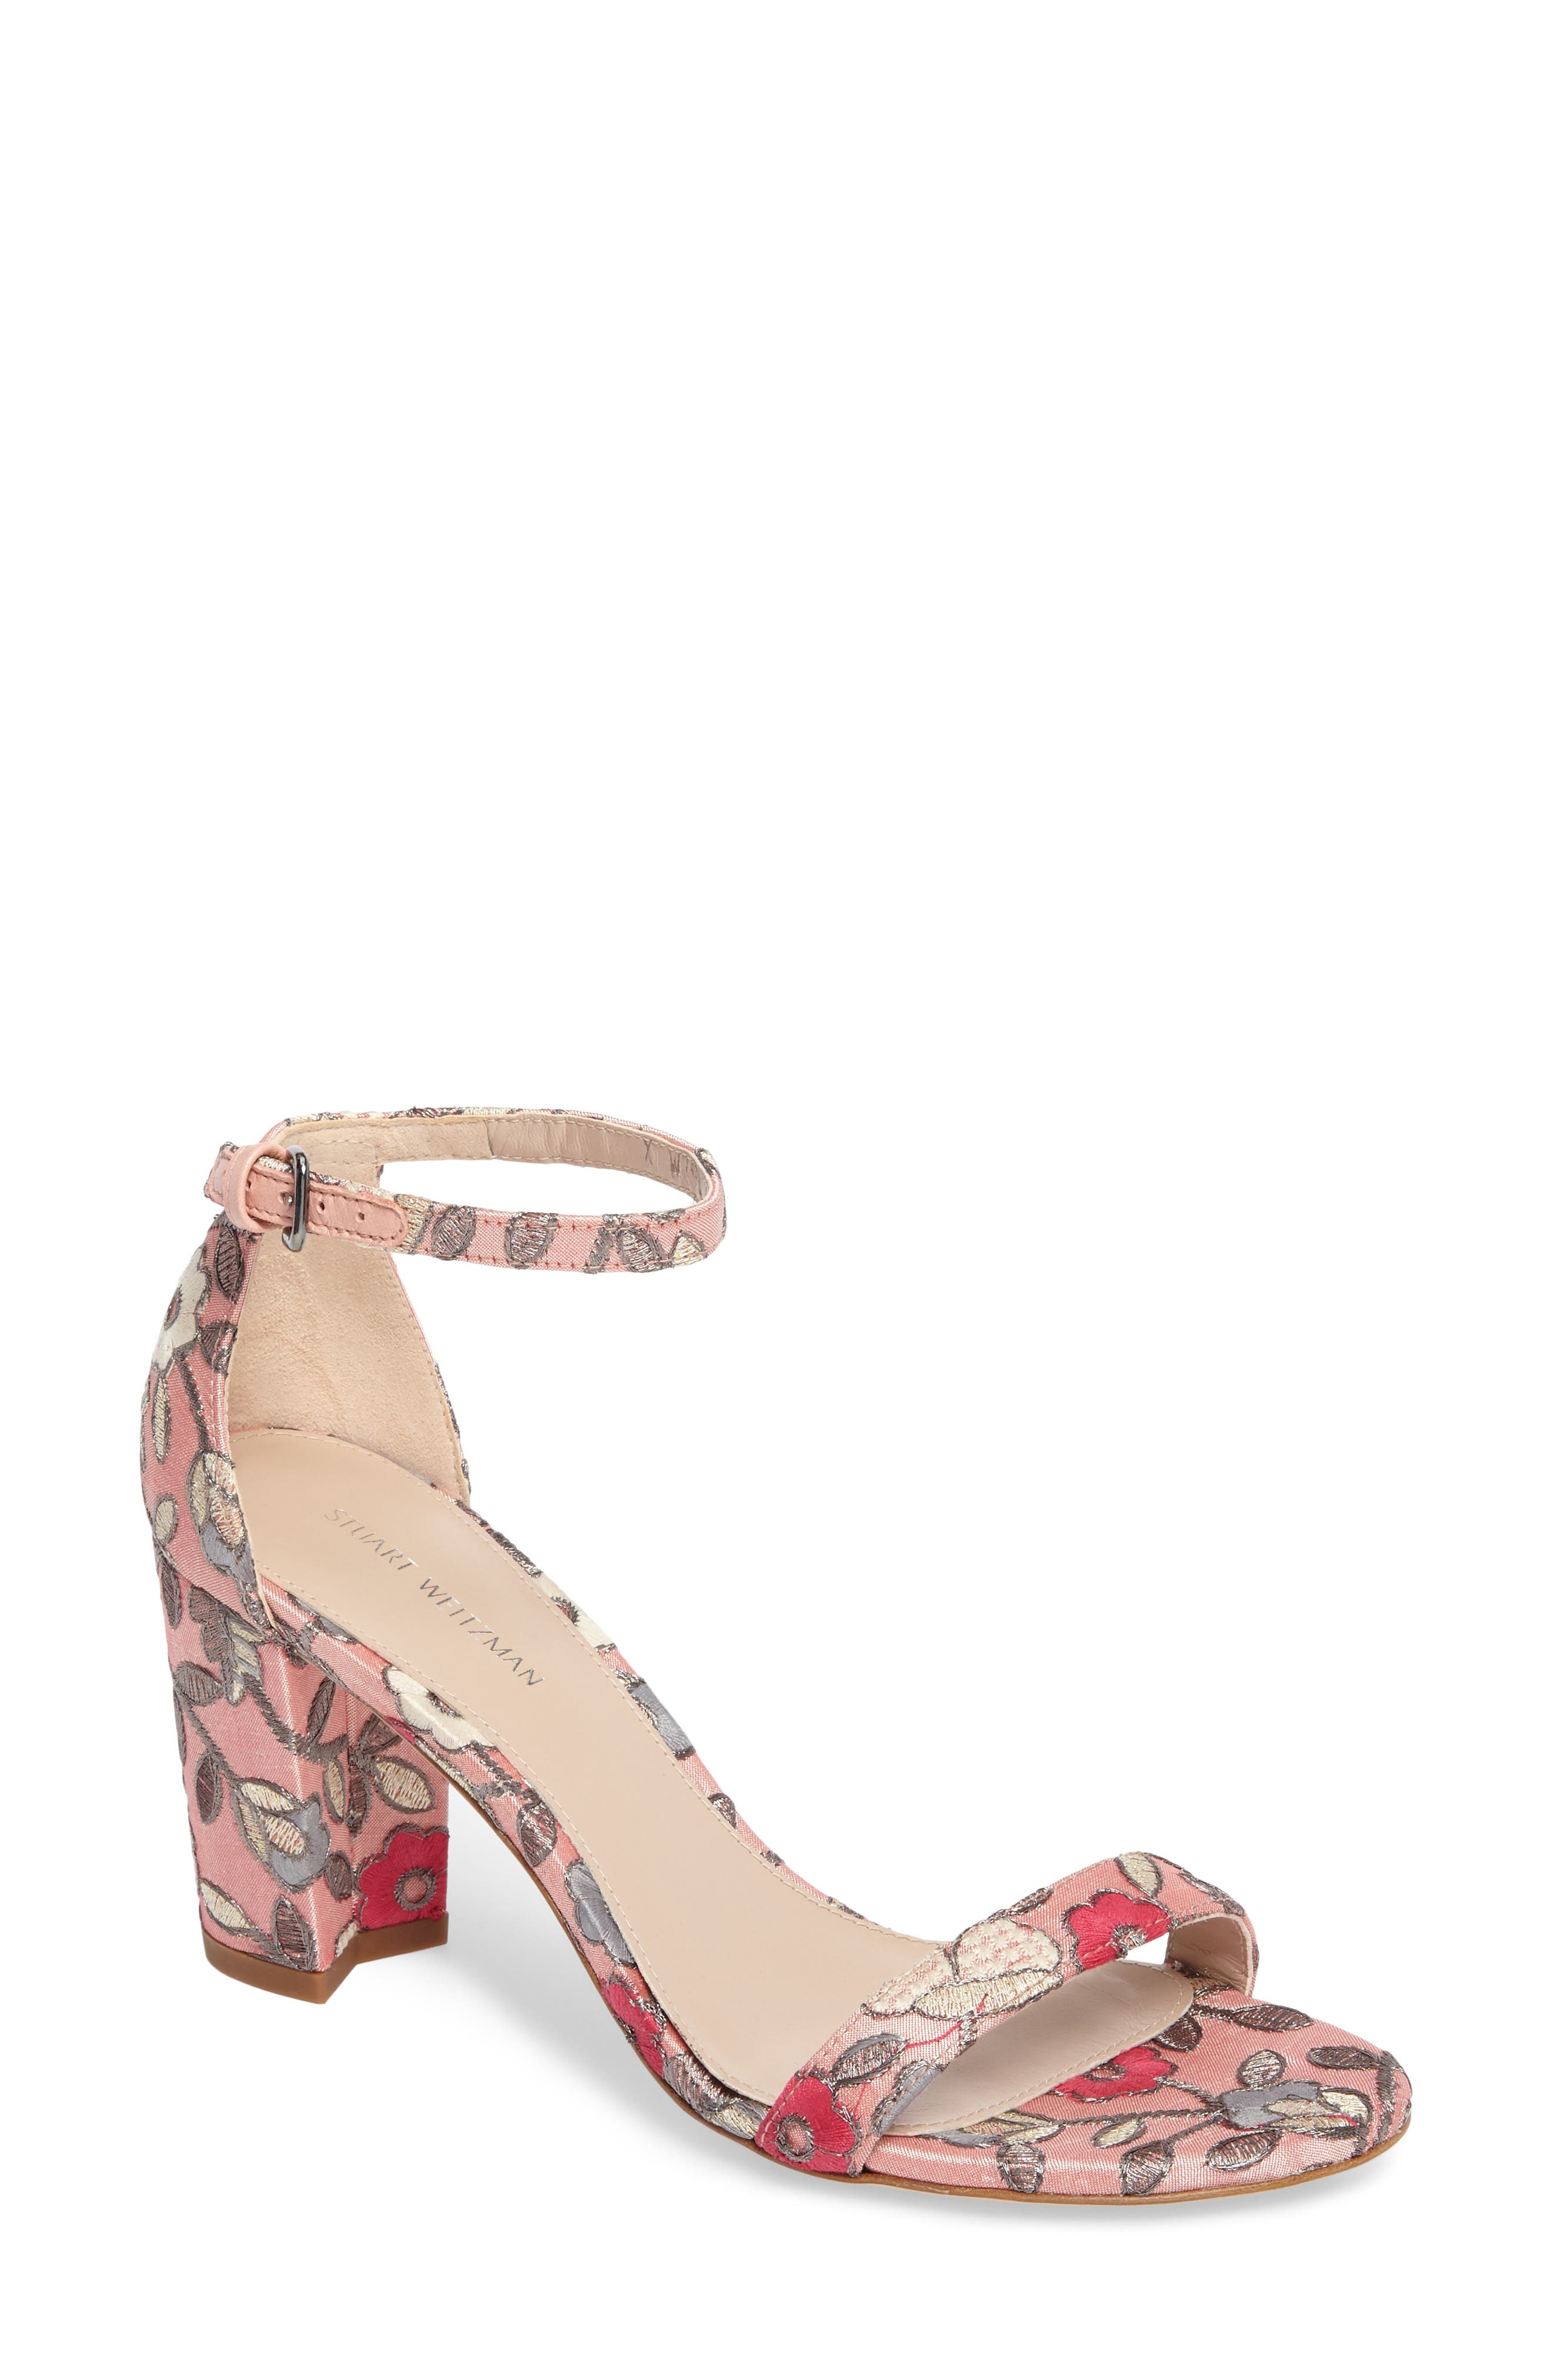 NearlyNude Ankle Strap Sandal,                             Main thumbnail 8, color,